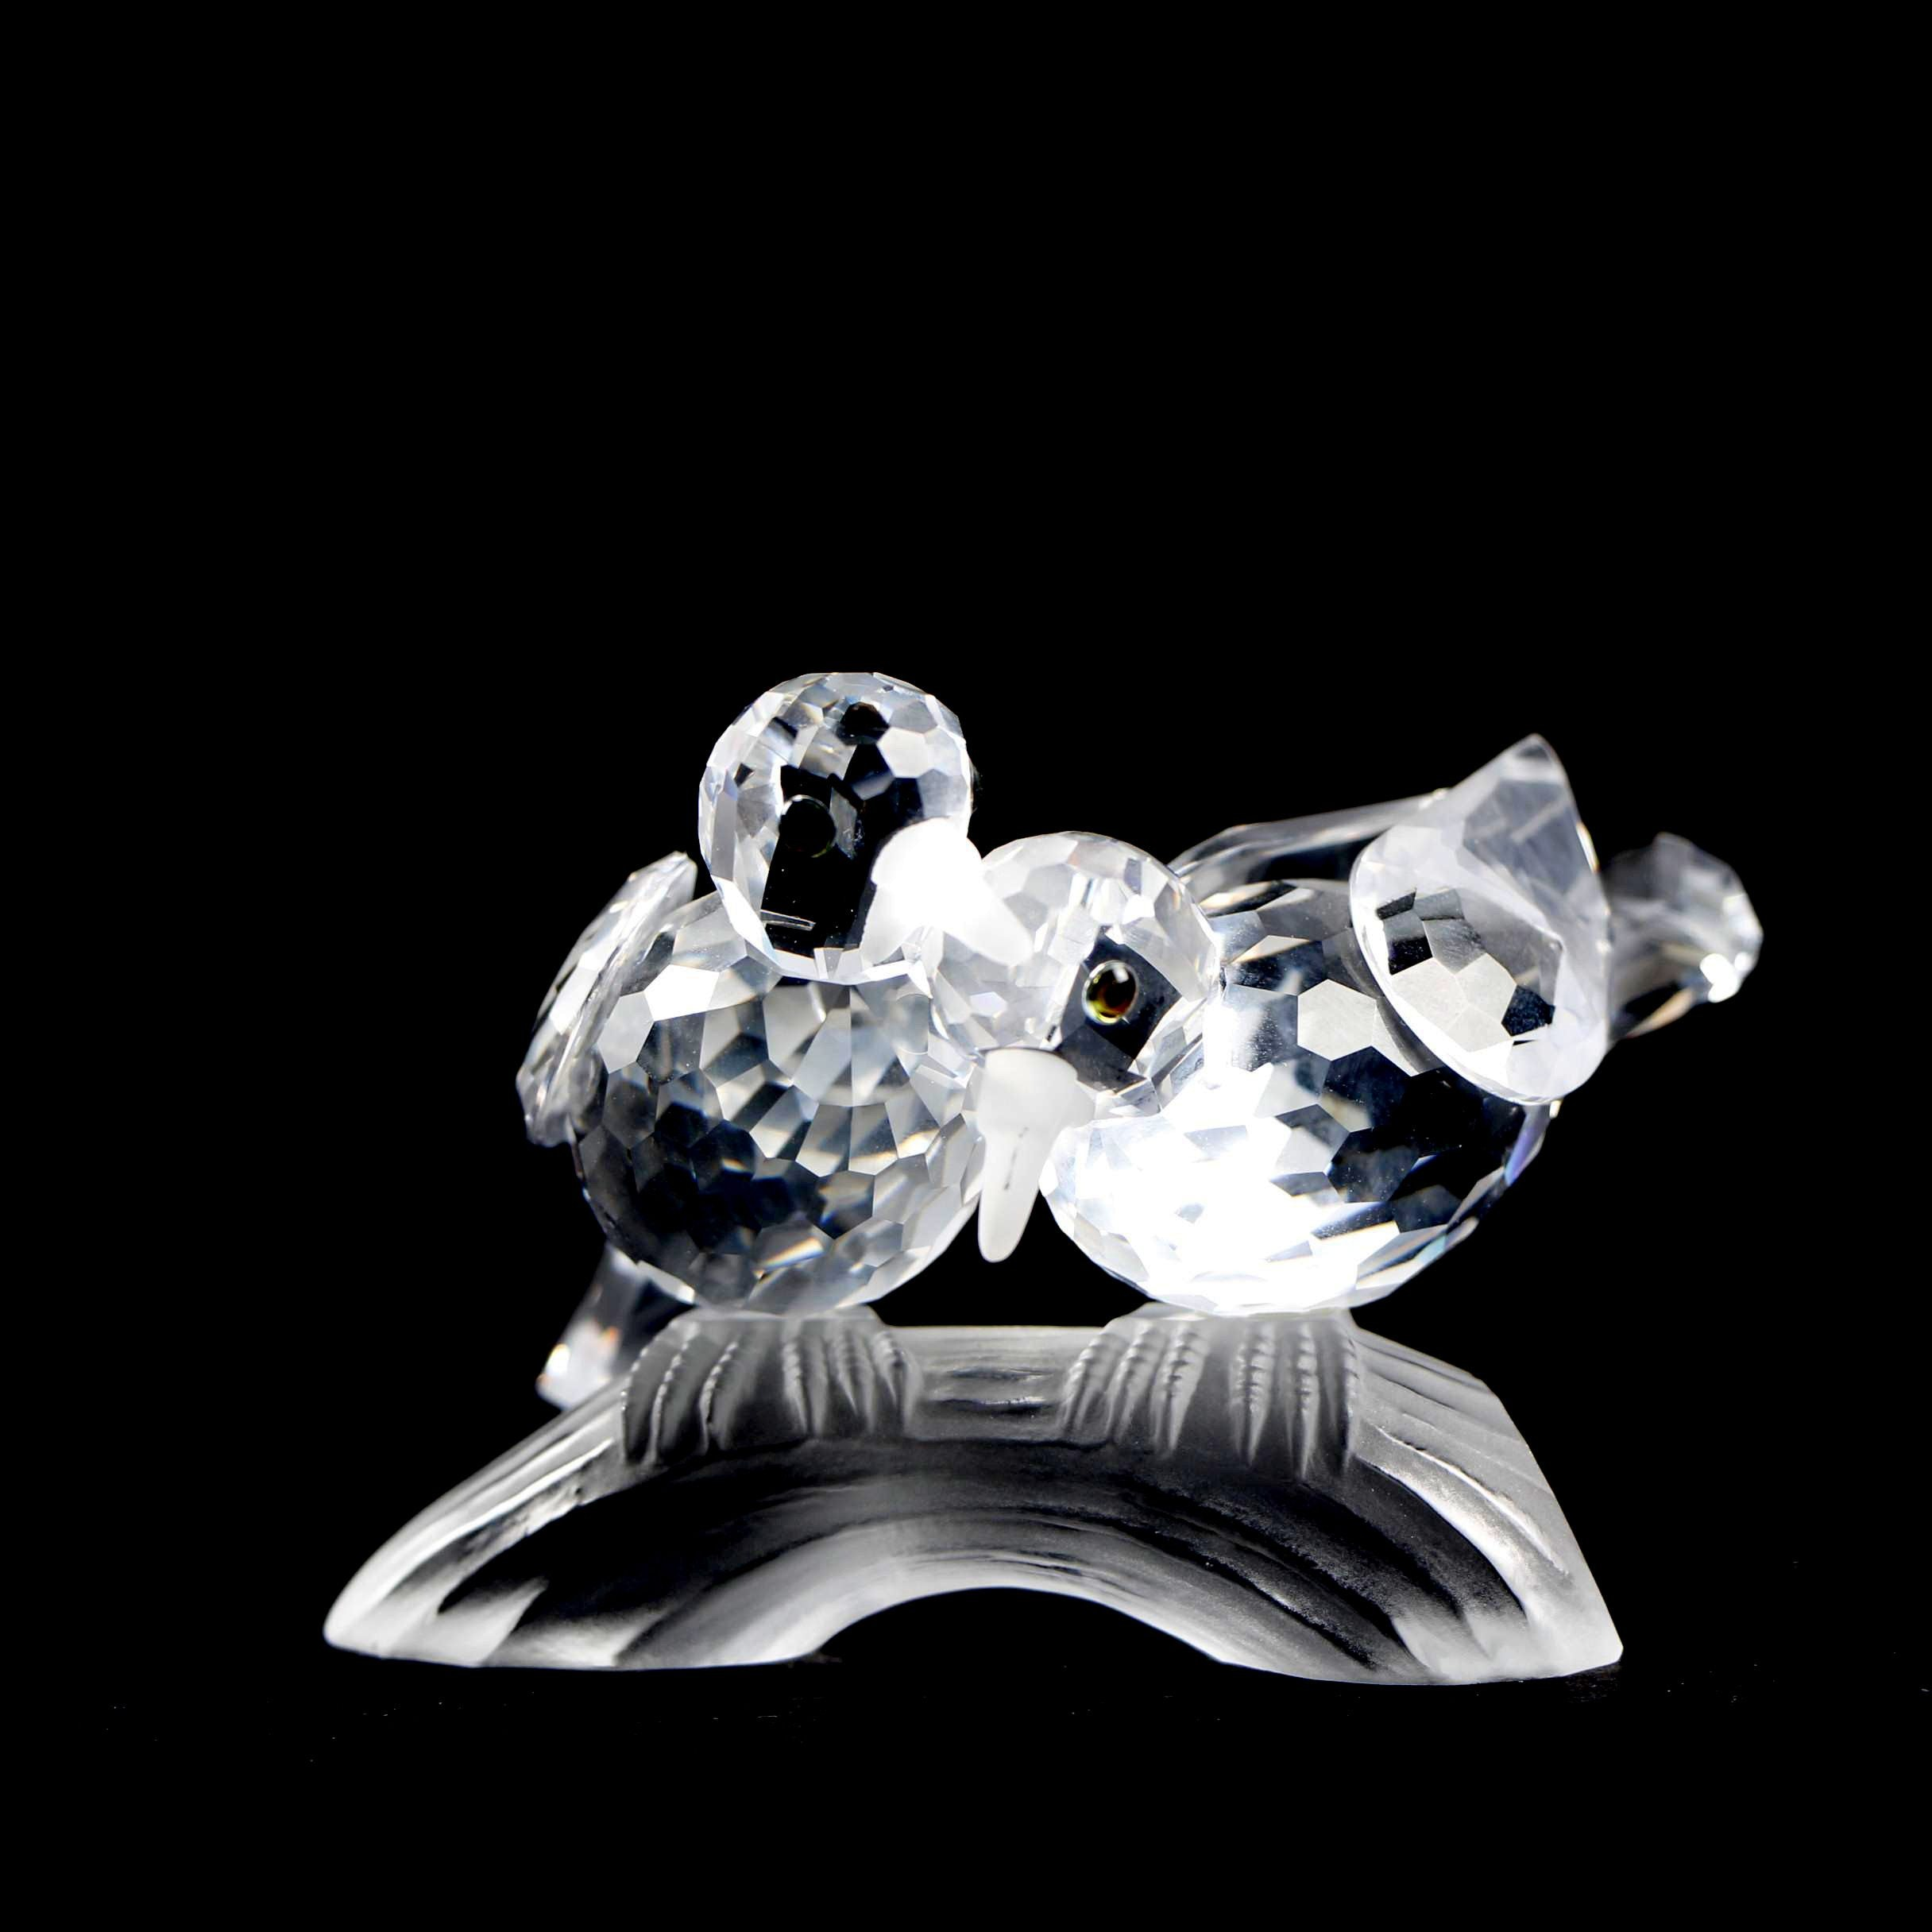 "Swarovski CS 1989 Annual Edition Crystal Figurine ""Amour"" - The Turtledoves"